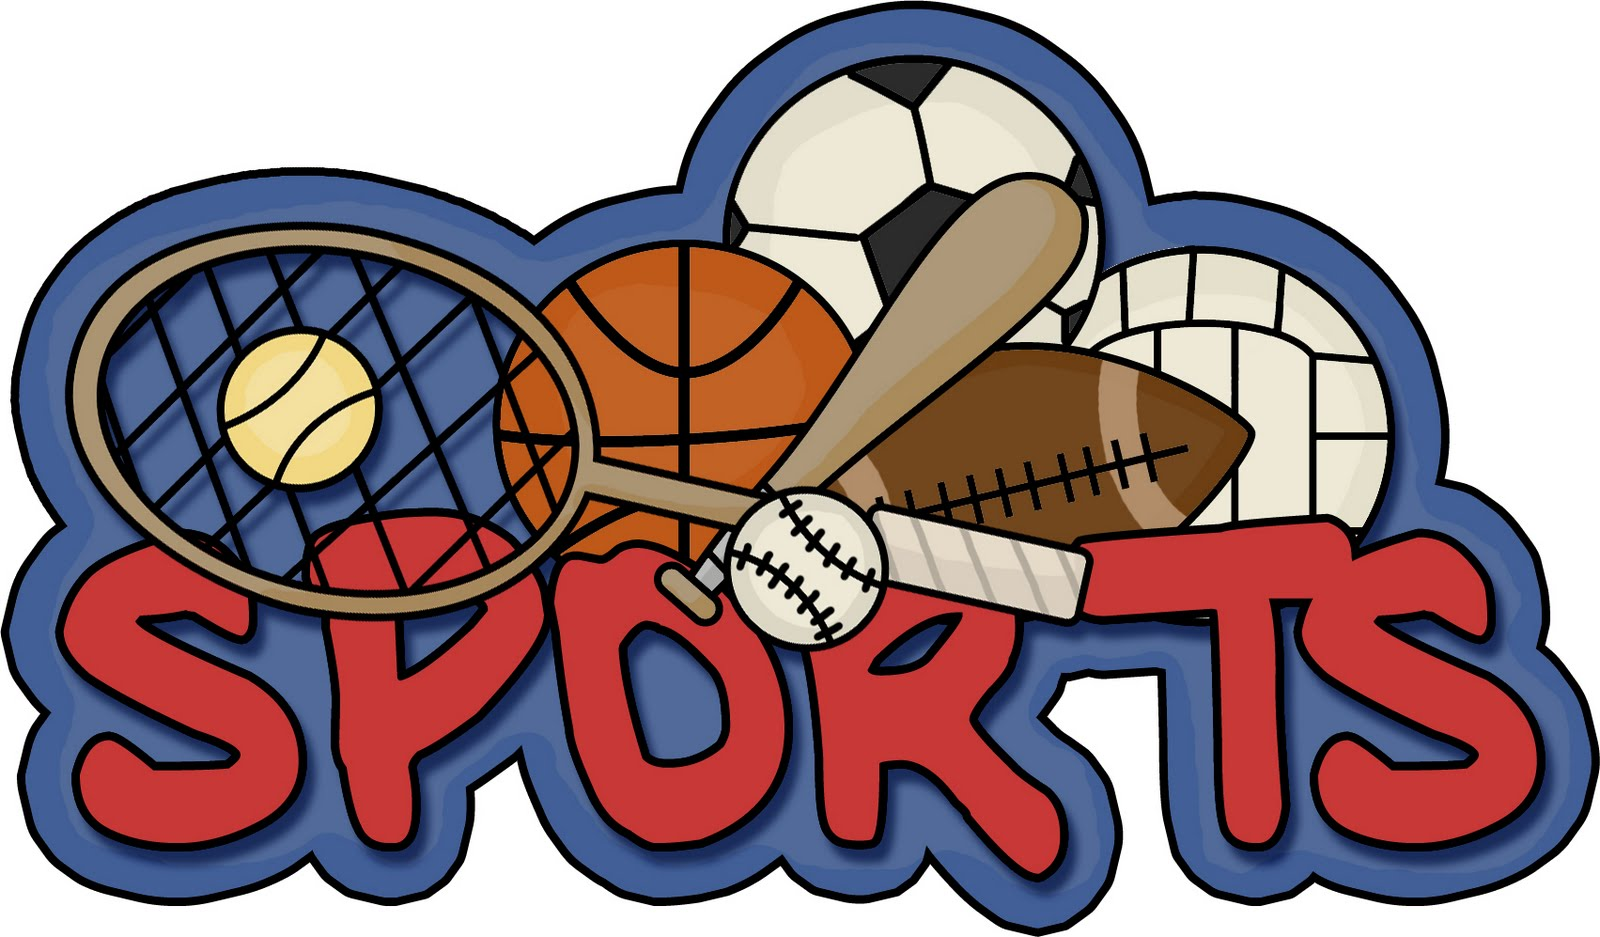 Free Sport Word Cliparts, Download Free Clip Art, Free Clip.